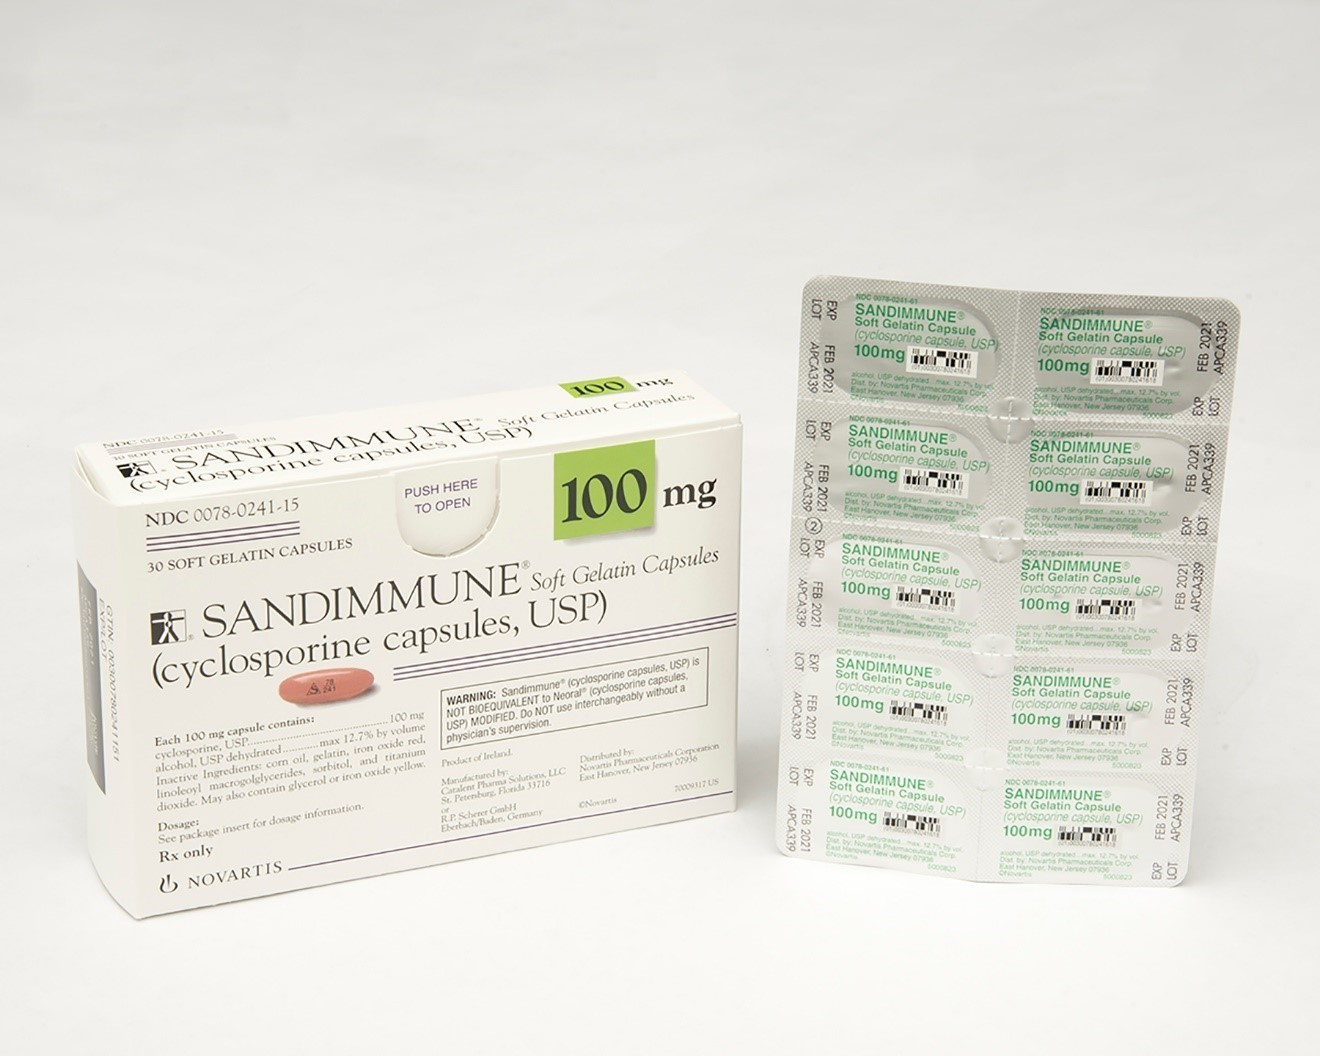 Recalled Sandimmune® 100 mg soft gelatin capsules